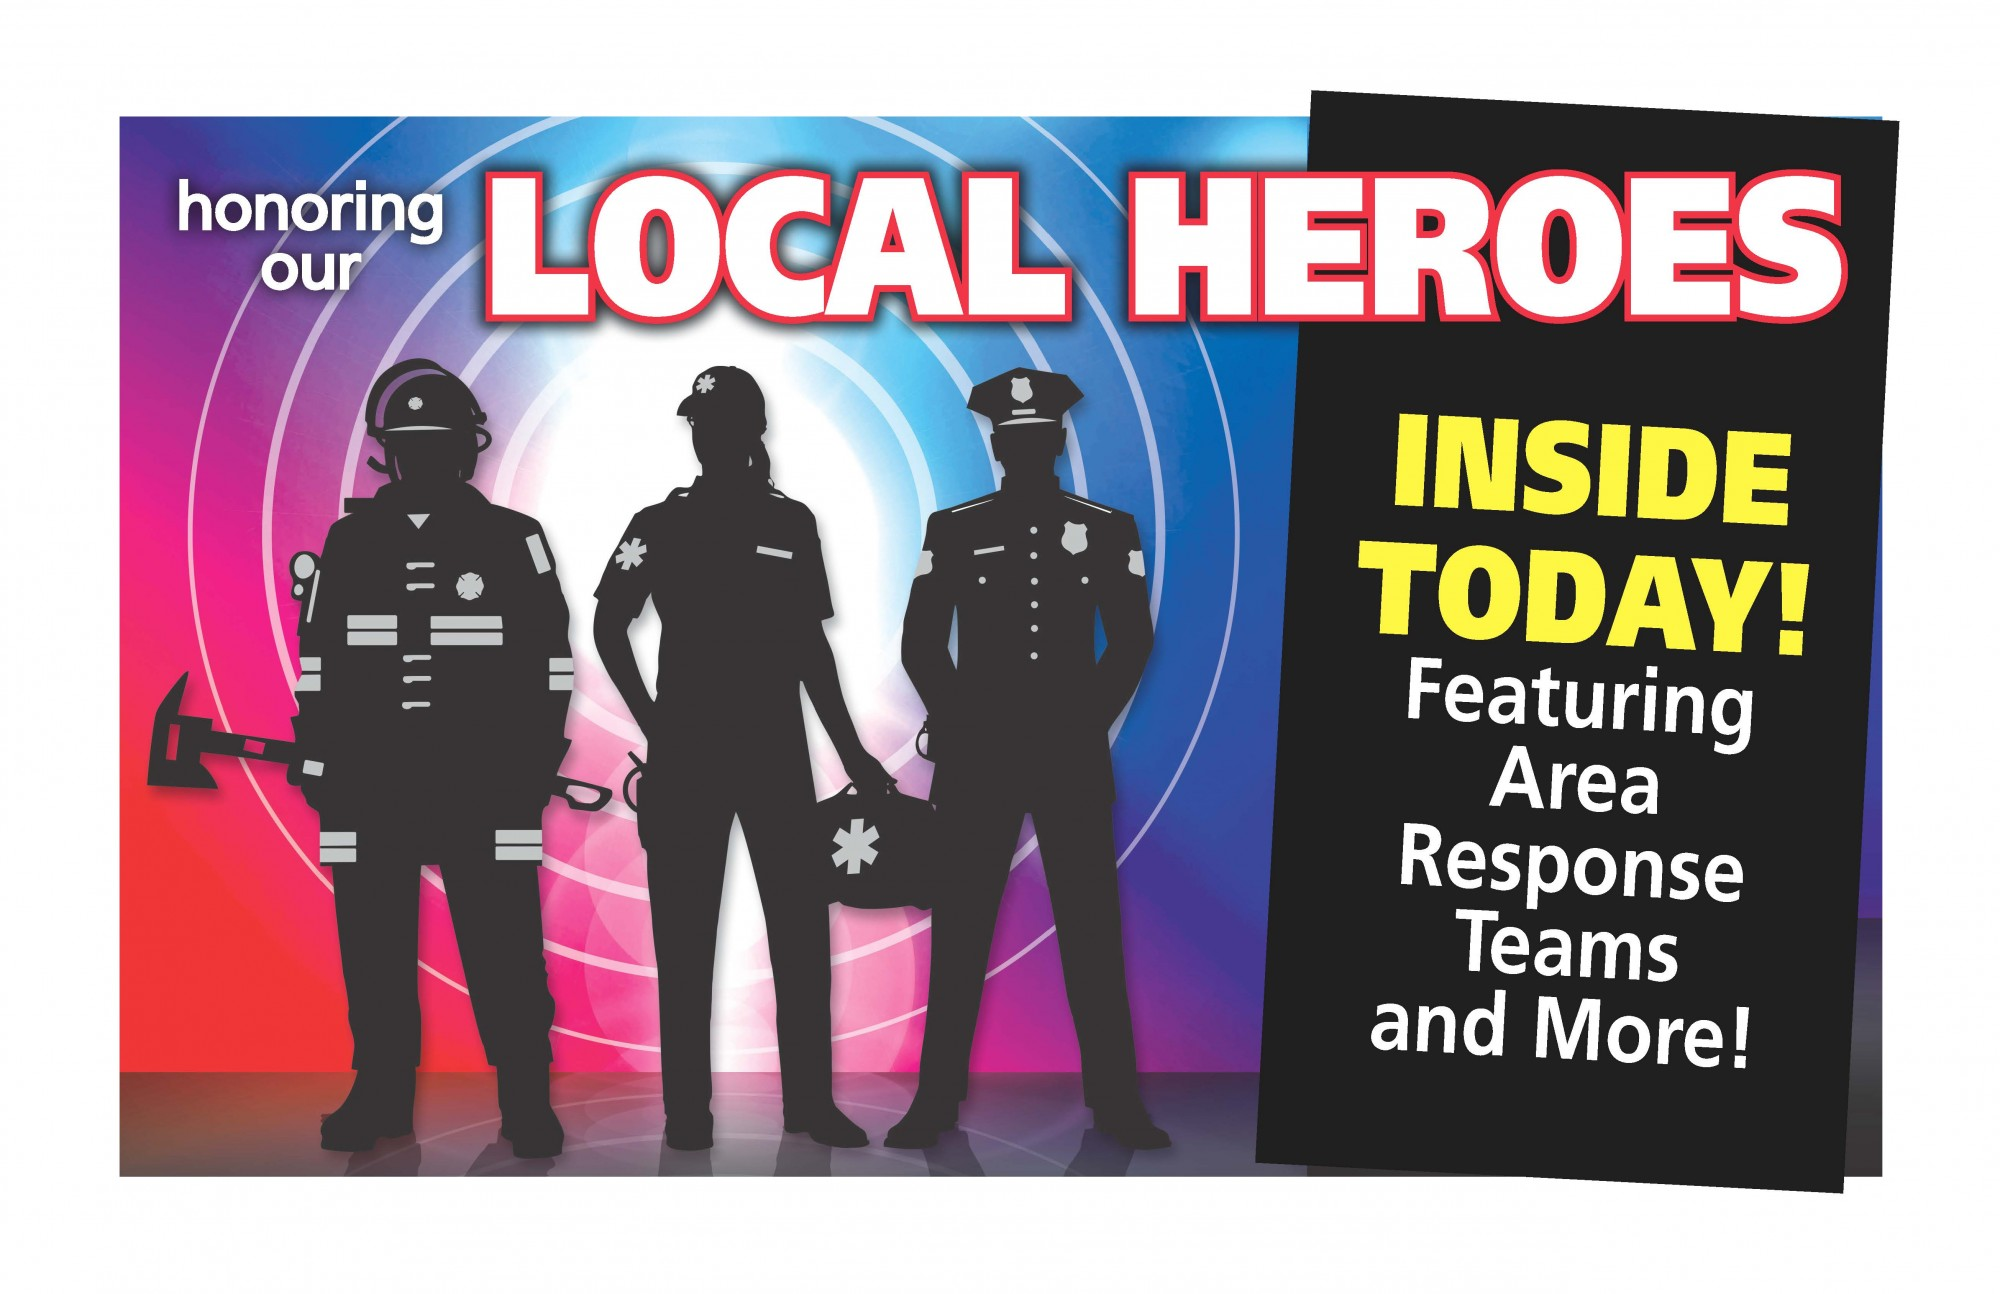 Idea #30 of 50 Days of Ideas! HONORING OUR LOCAL HEROES!